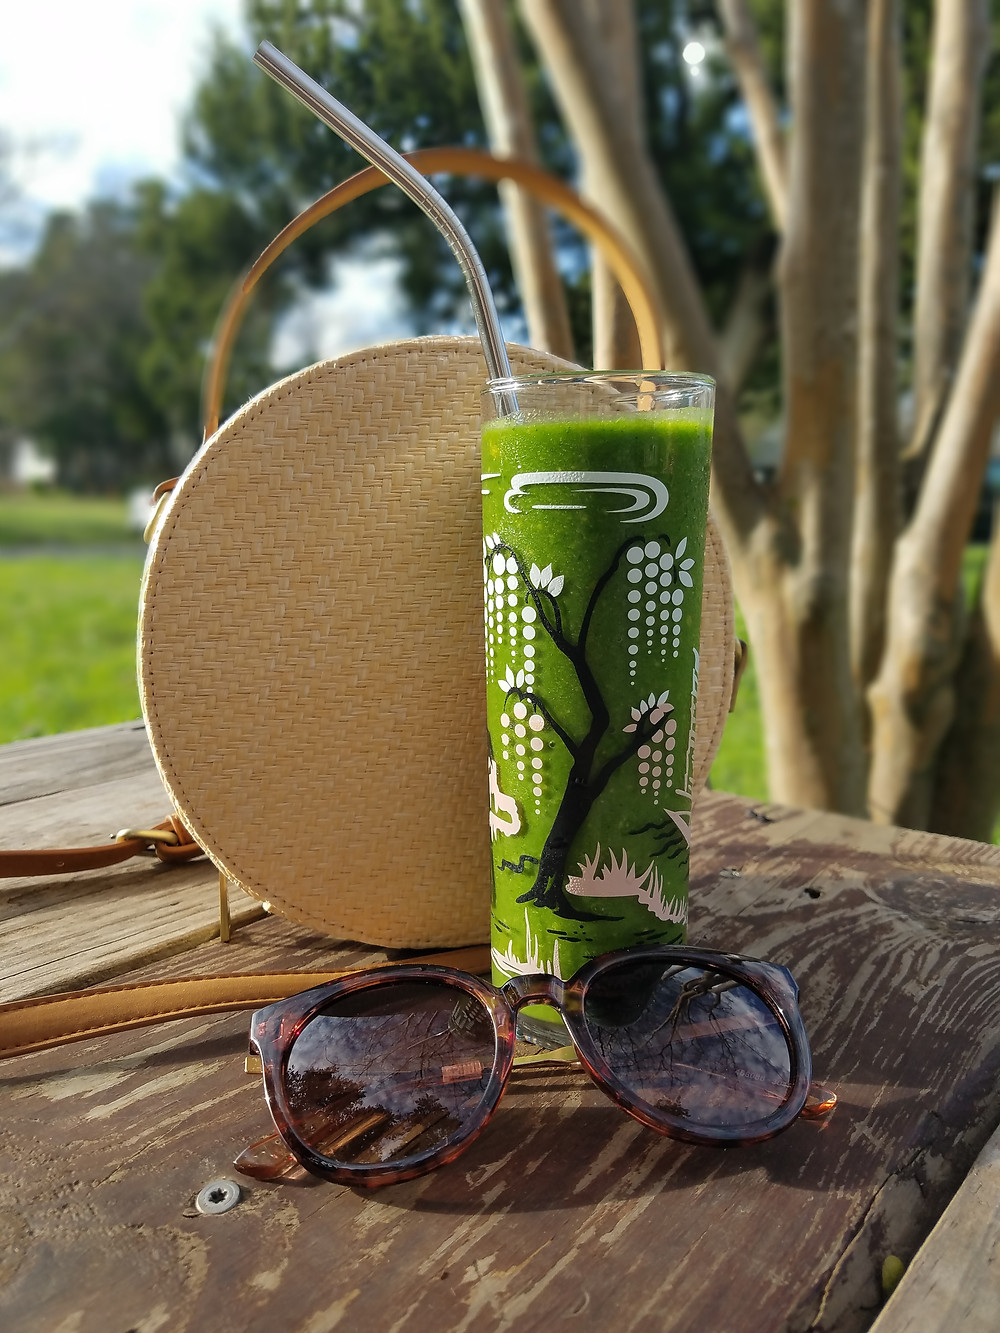 Green Smoothie, Sunglasses, Summer Purse